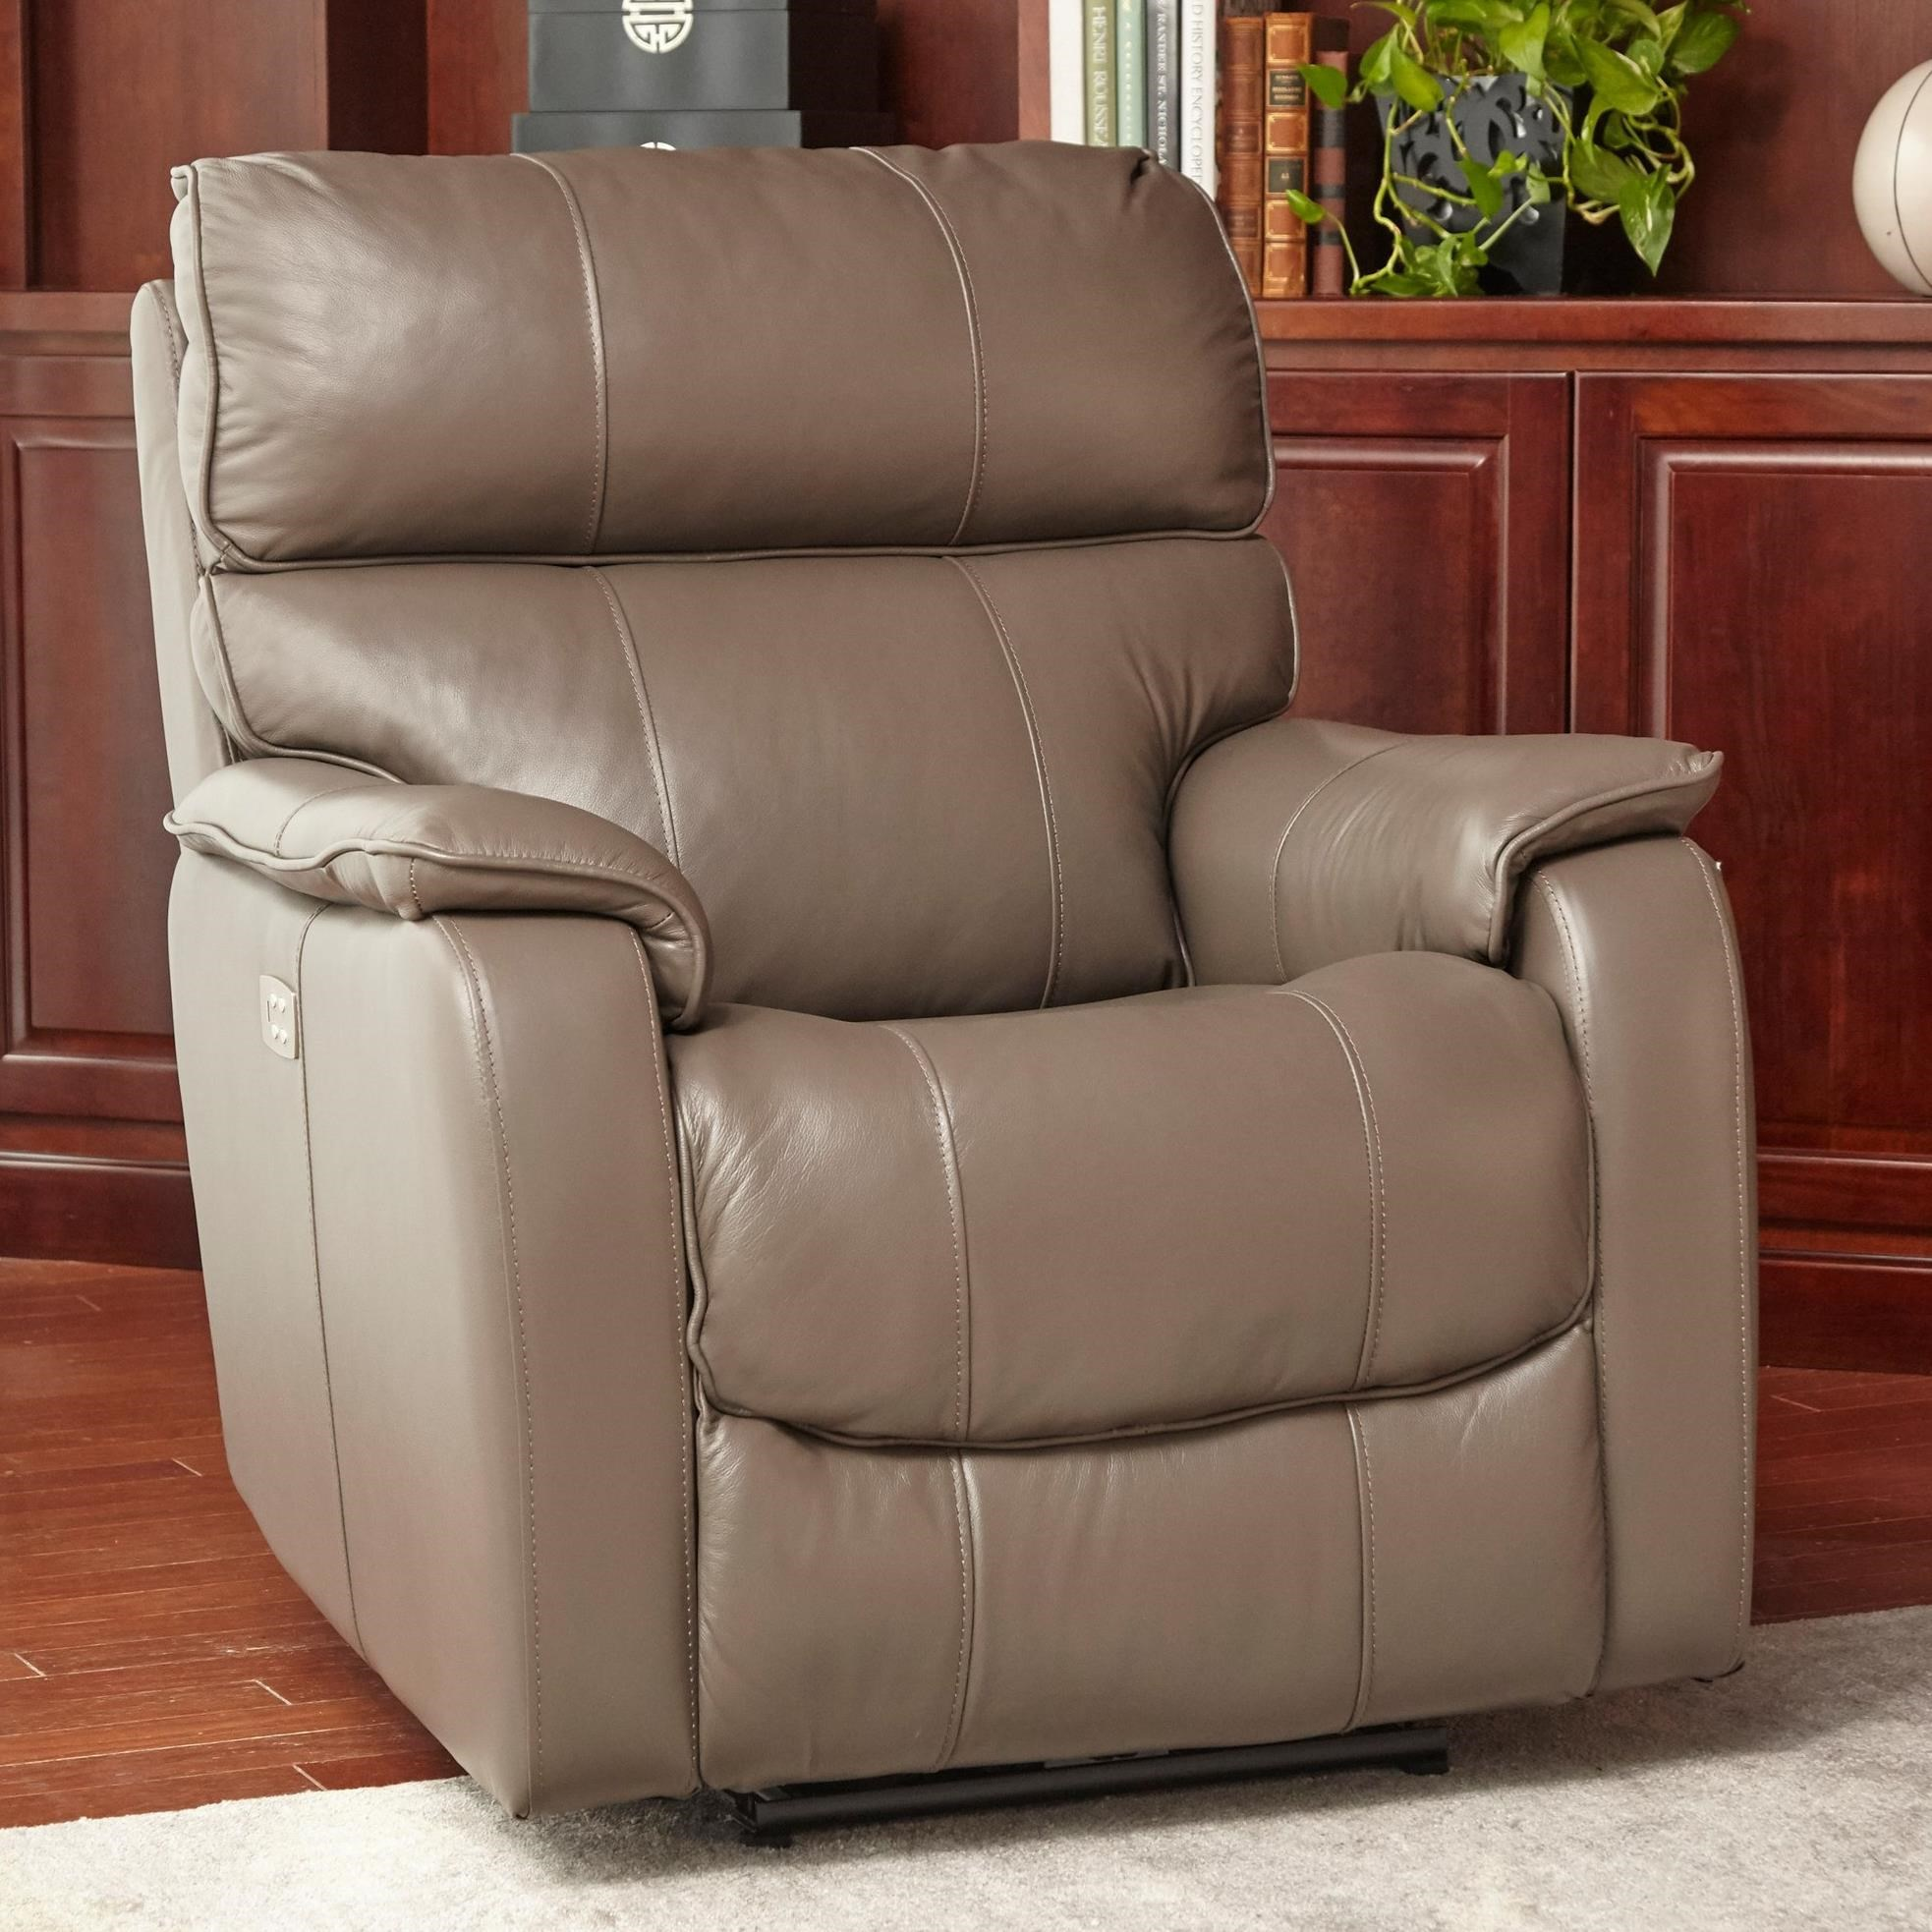 Cheers Uk116 Uk116 L1 1e Phr Power Recliner With Power